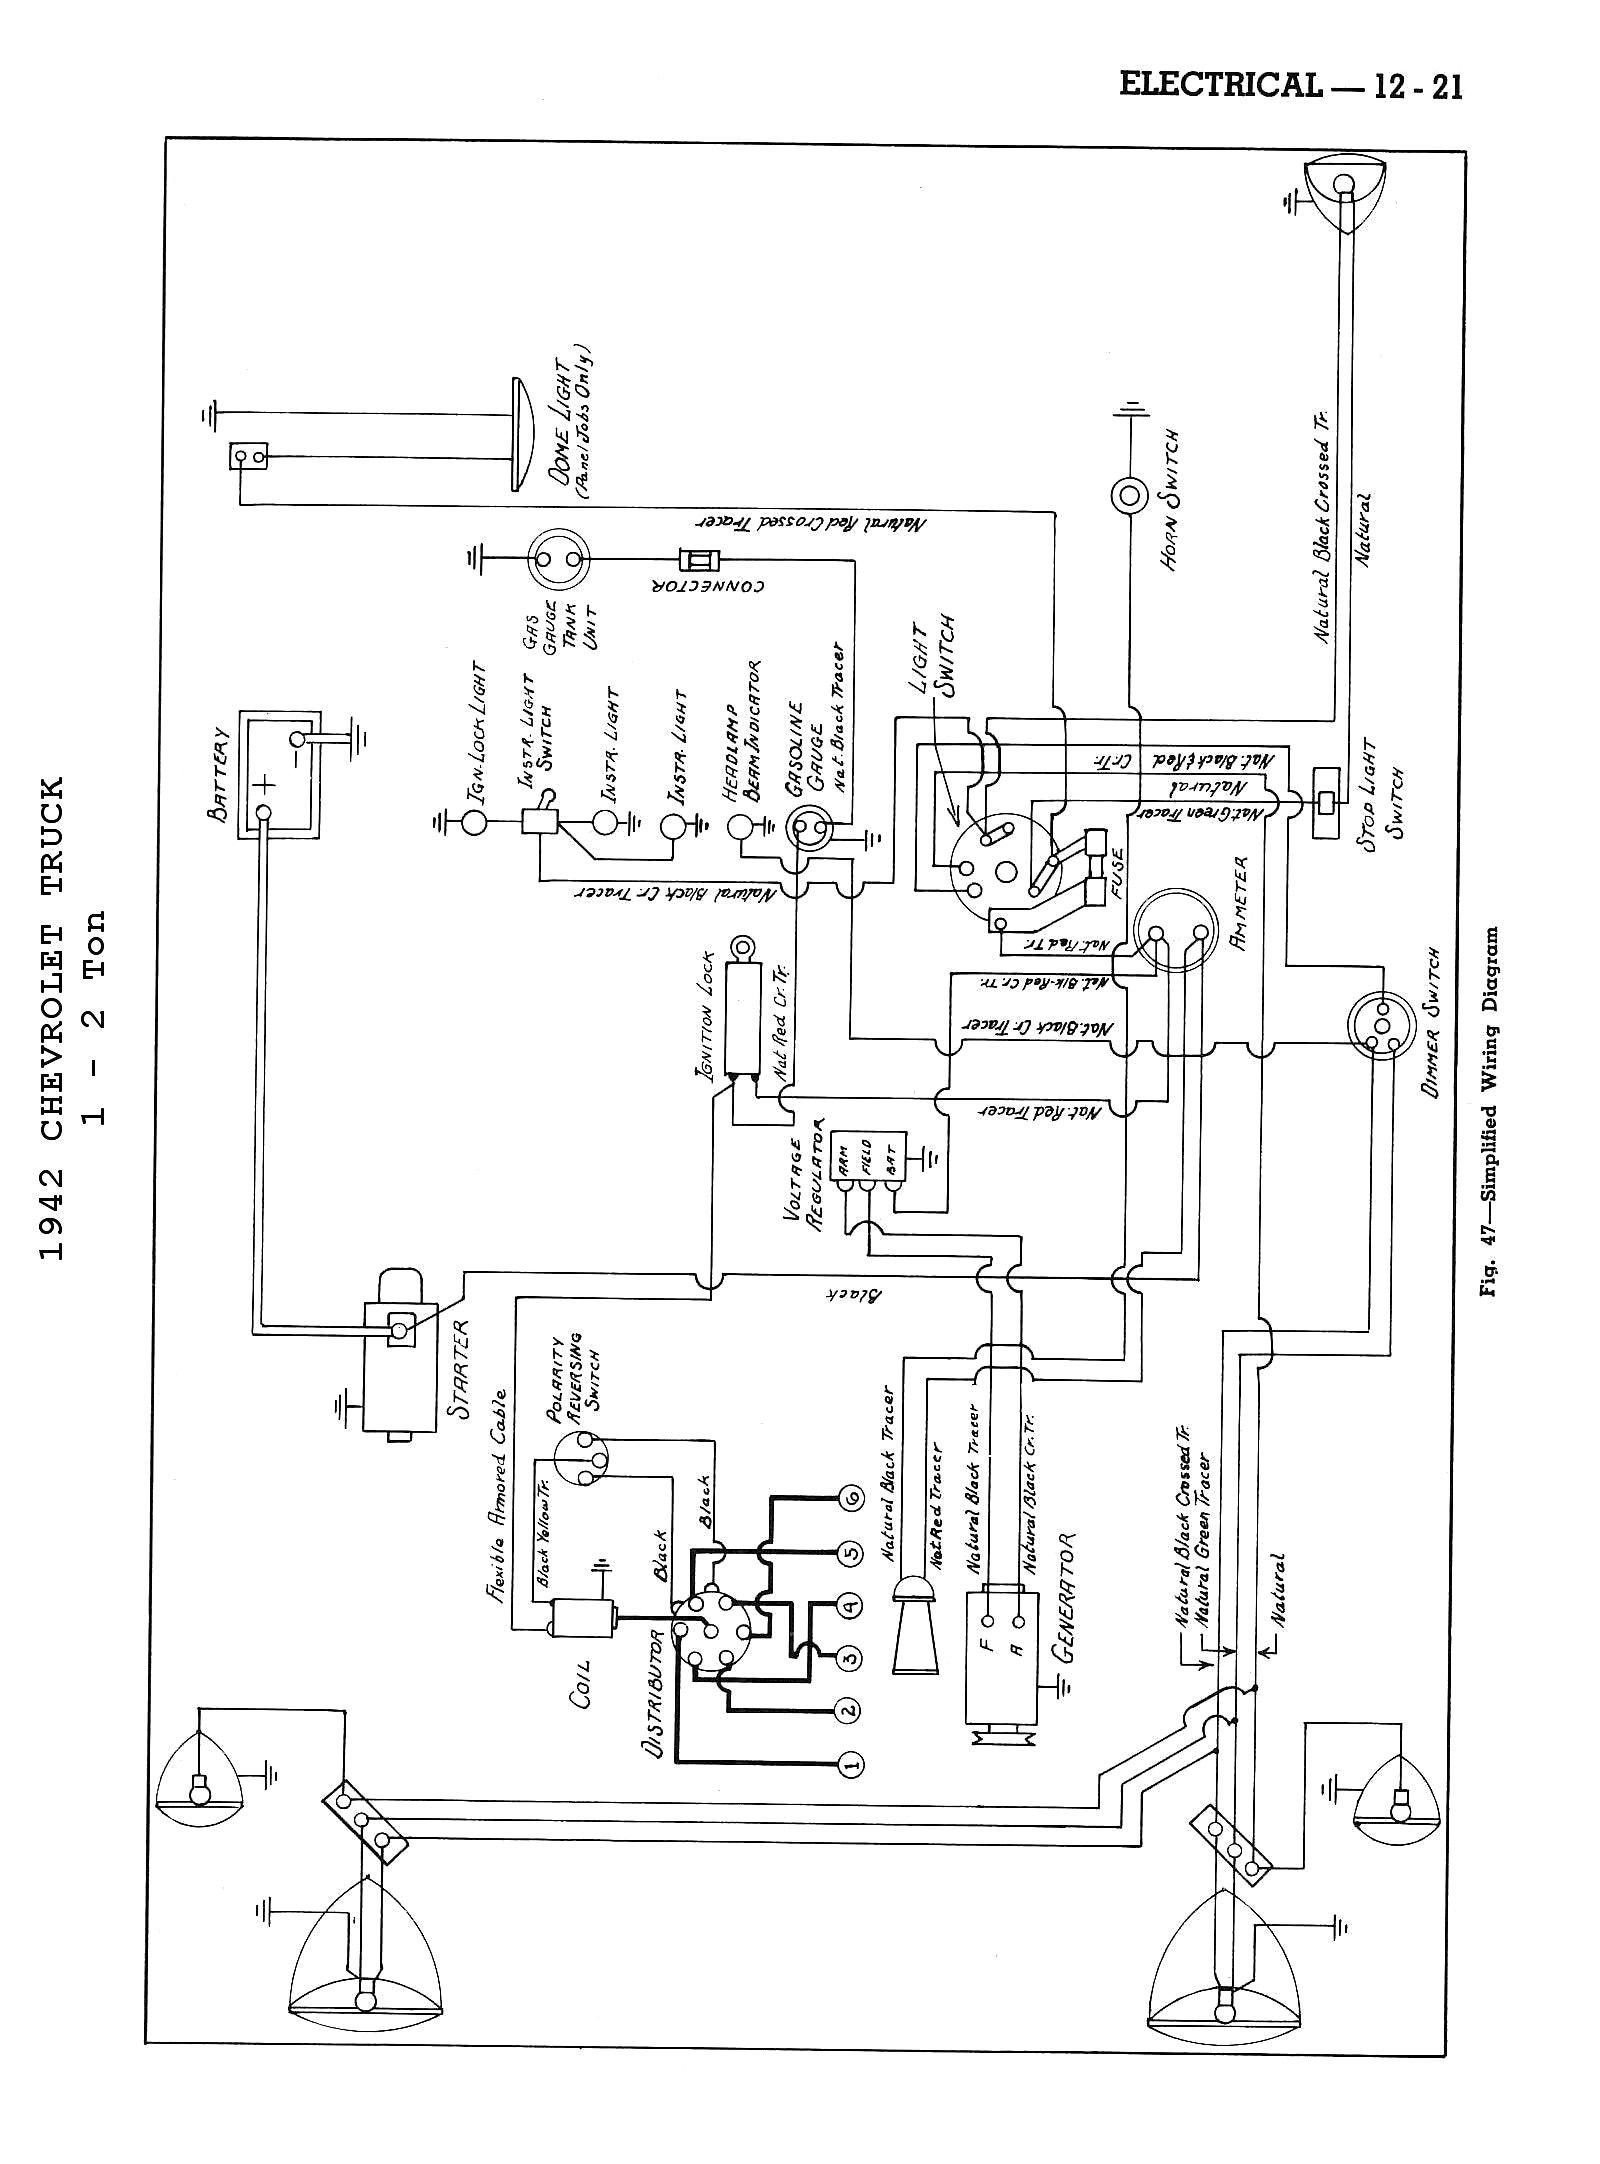 hight resolution of suburban water heater wiring diagram kenmore dryer